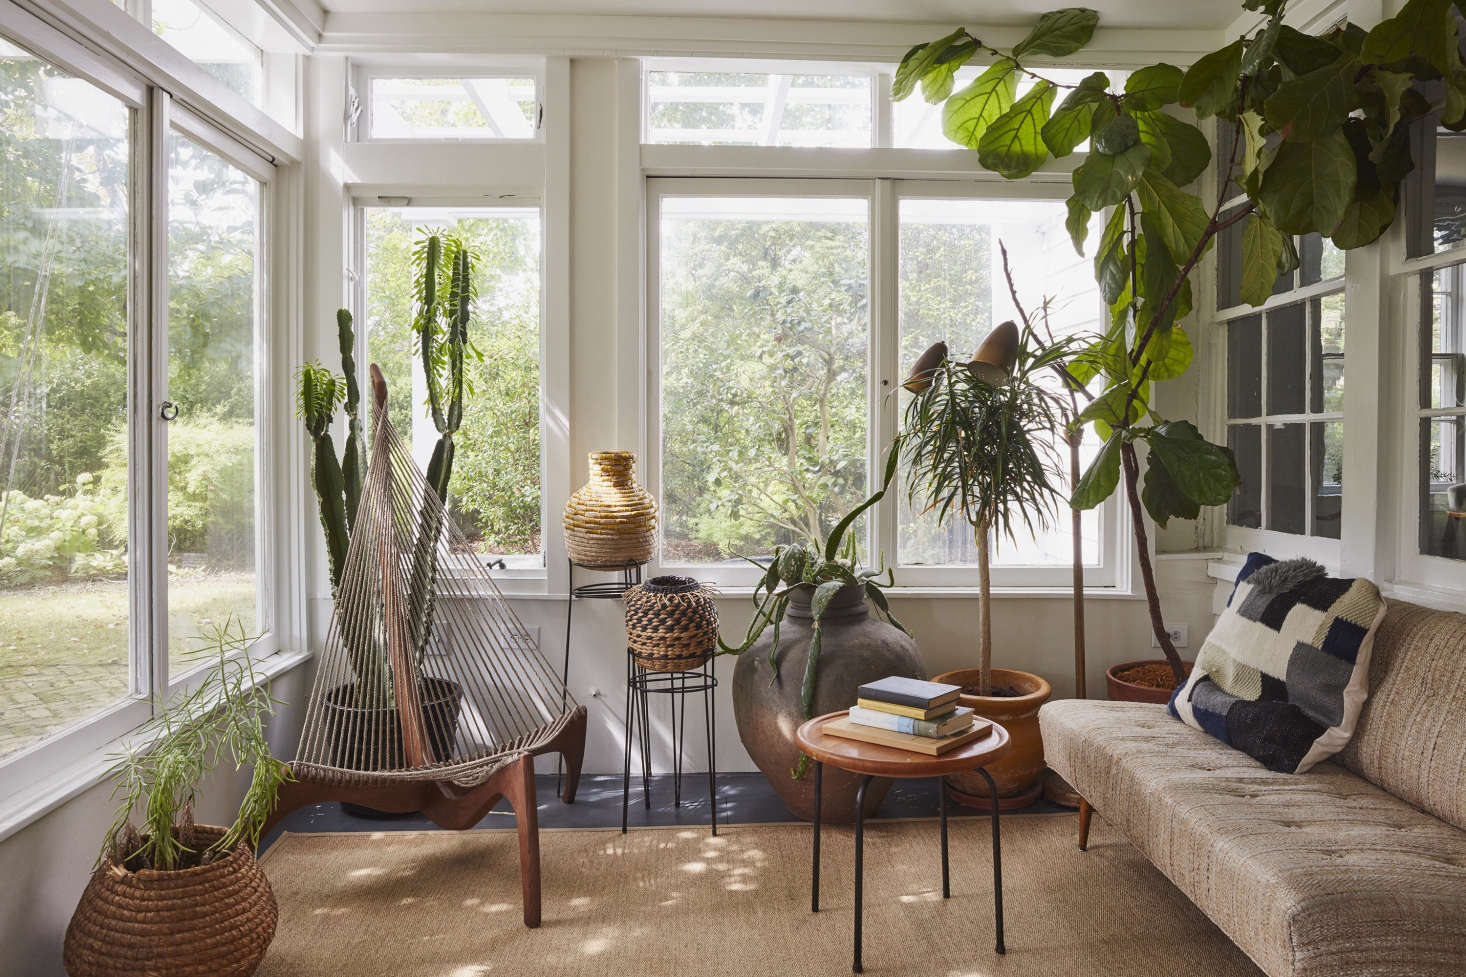 In a sunroom on Long Island, designer C.S. Valentin unified a disparate collection of desert and tropical plants in pots made by his brother, David Haskell of DGH Studio. Photograph by Jonathan Hökklo.